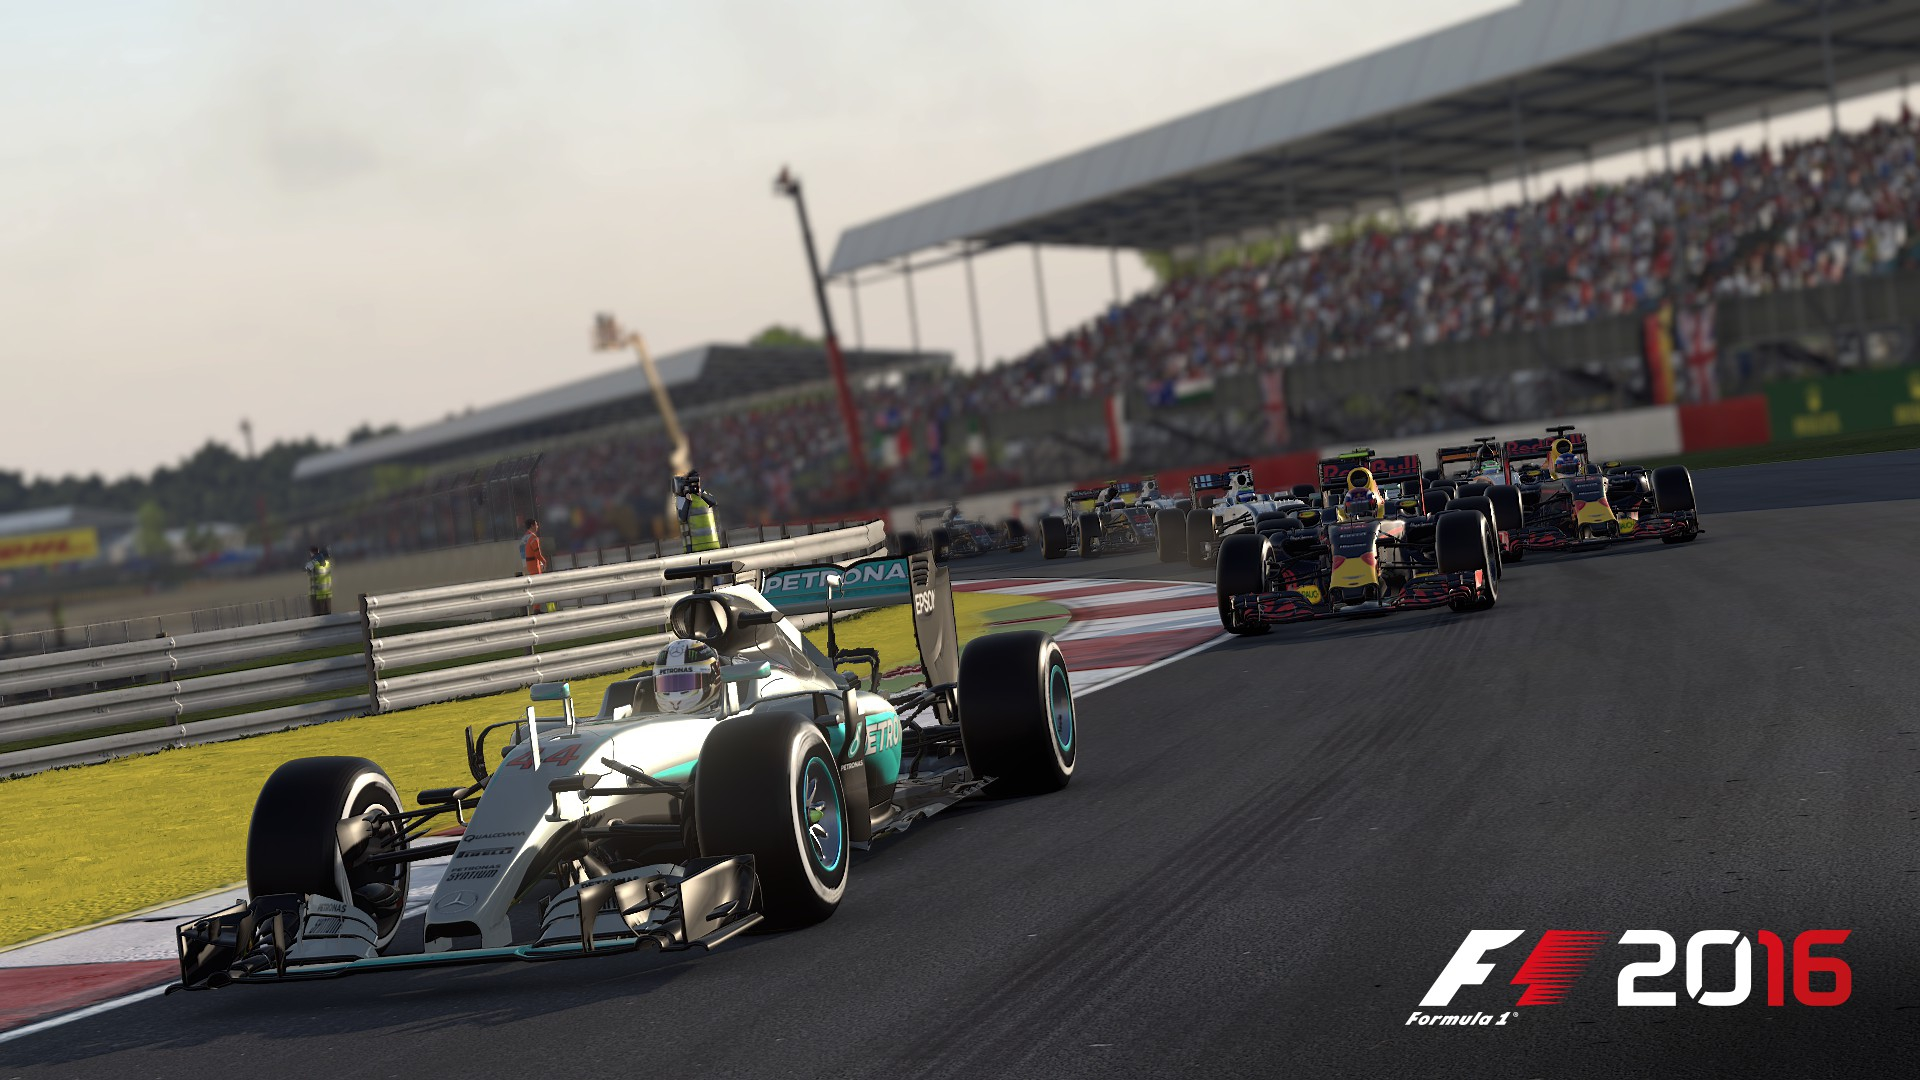 f1-2016-ps4-pinof1-fuga-da-leader